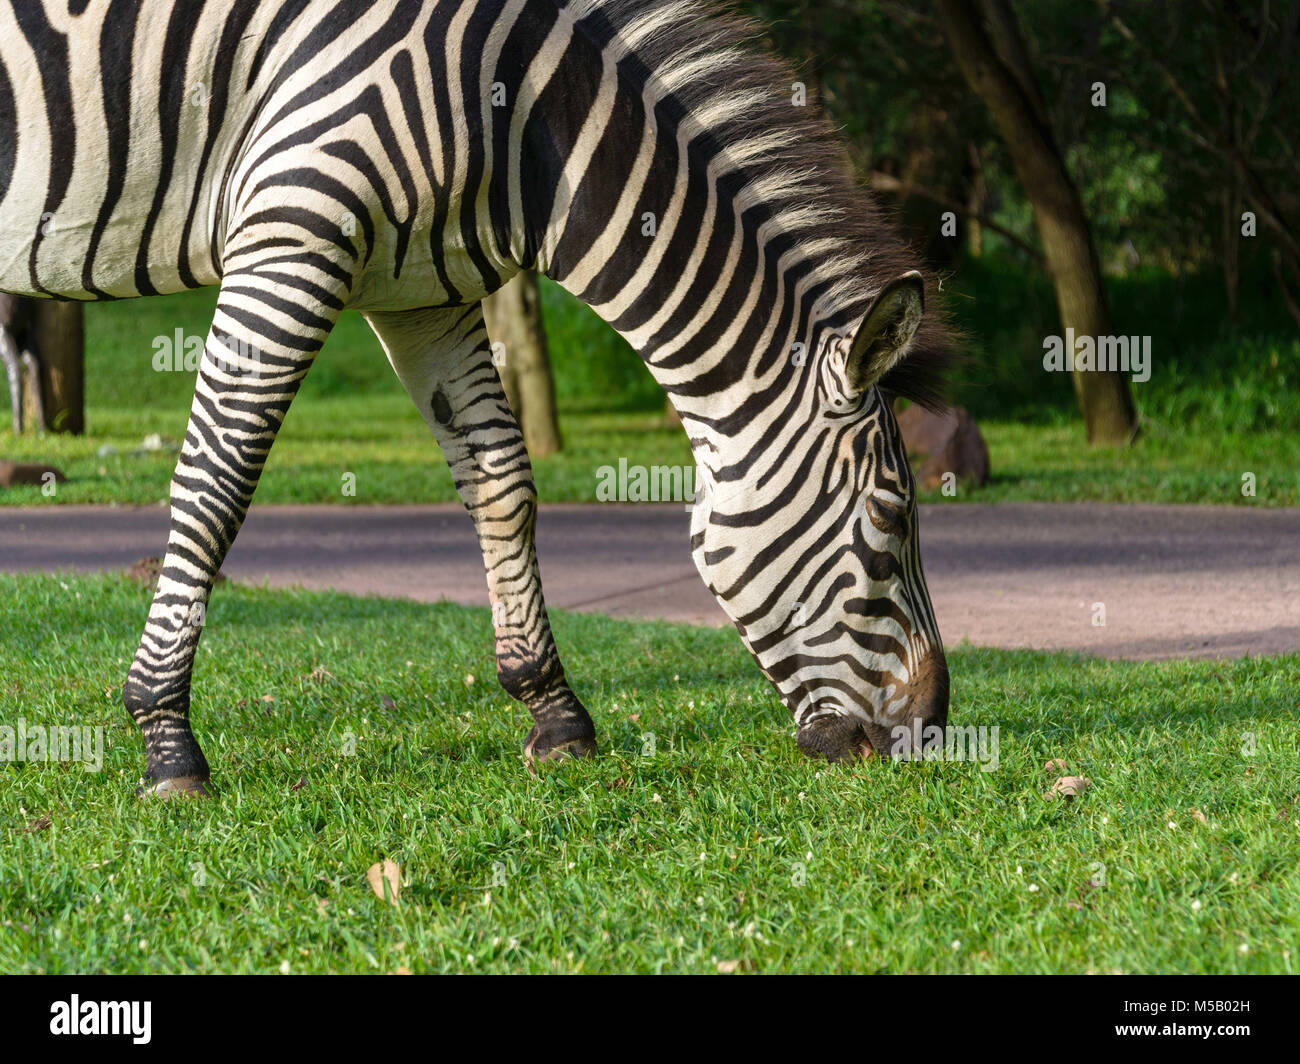 Wild African zebra in nature - Stock Image